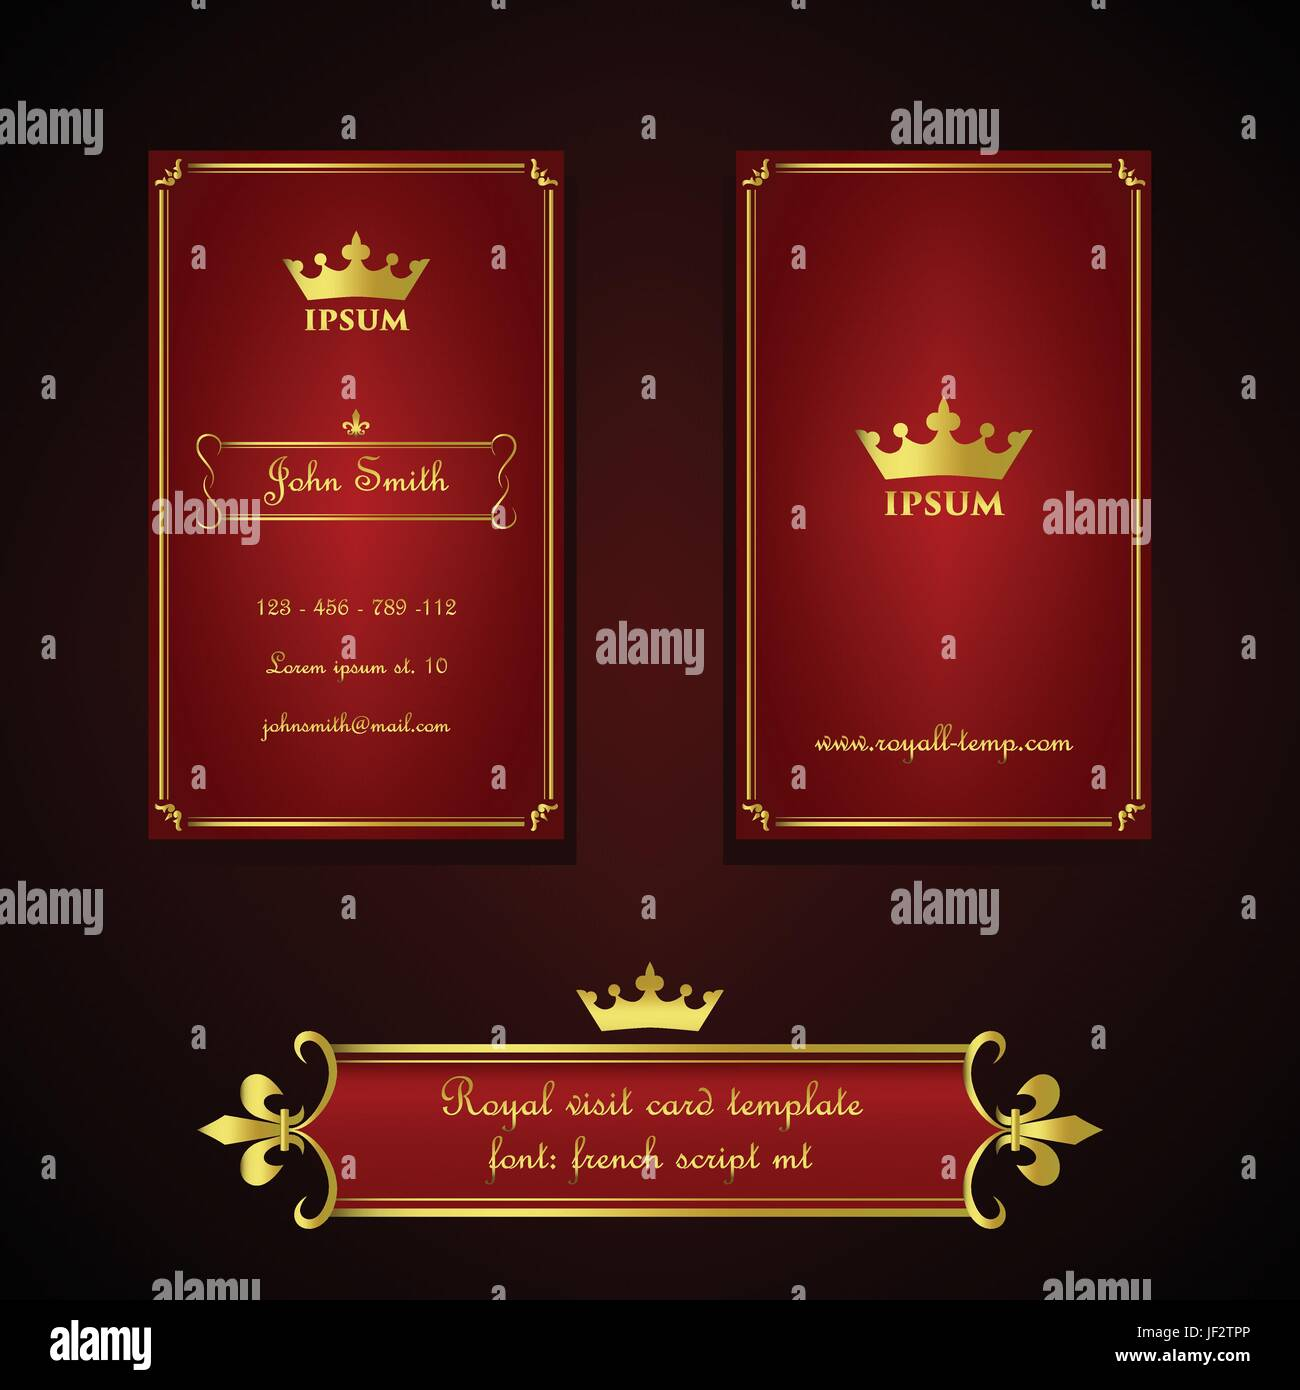 golden, decorative, sophisticated, business card, red, royal, crown ...